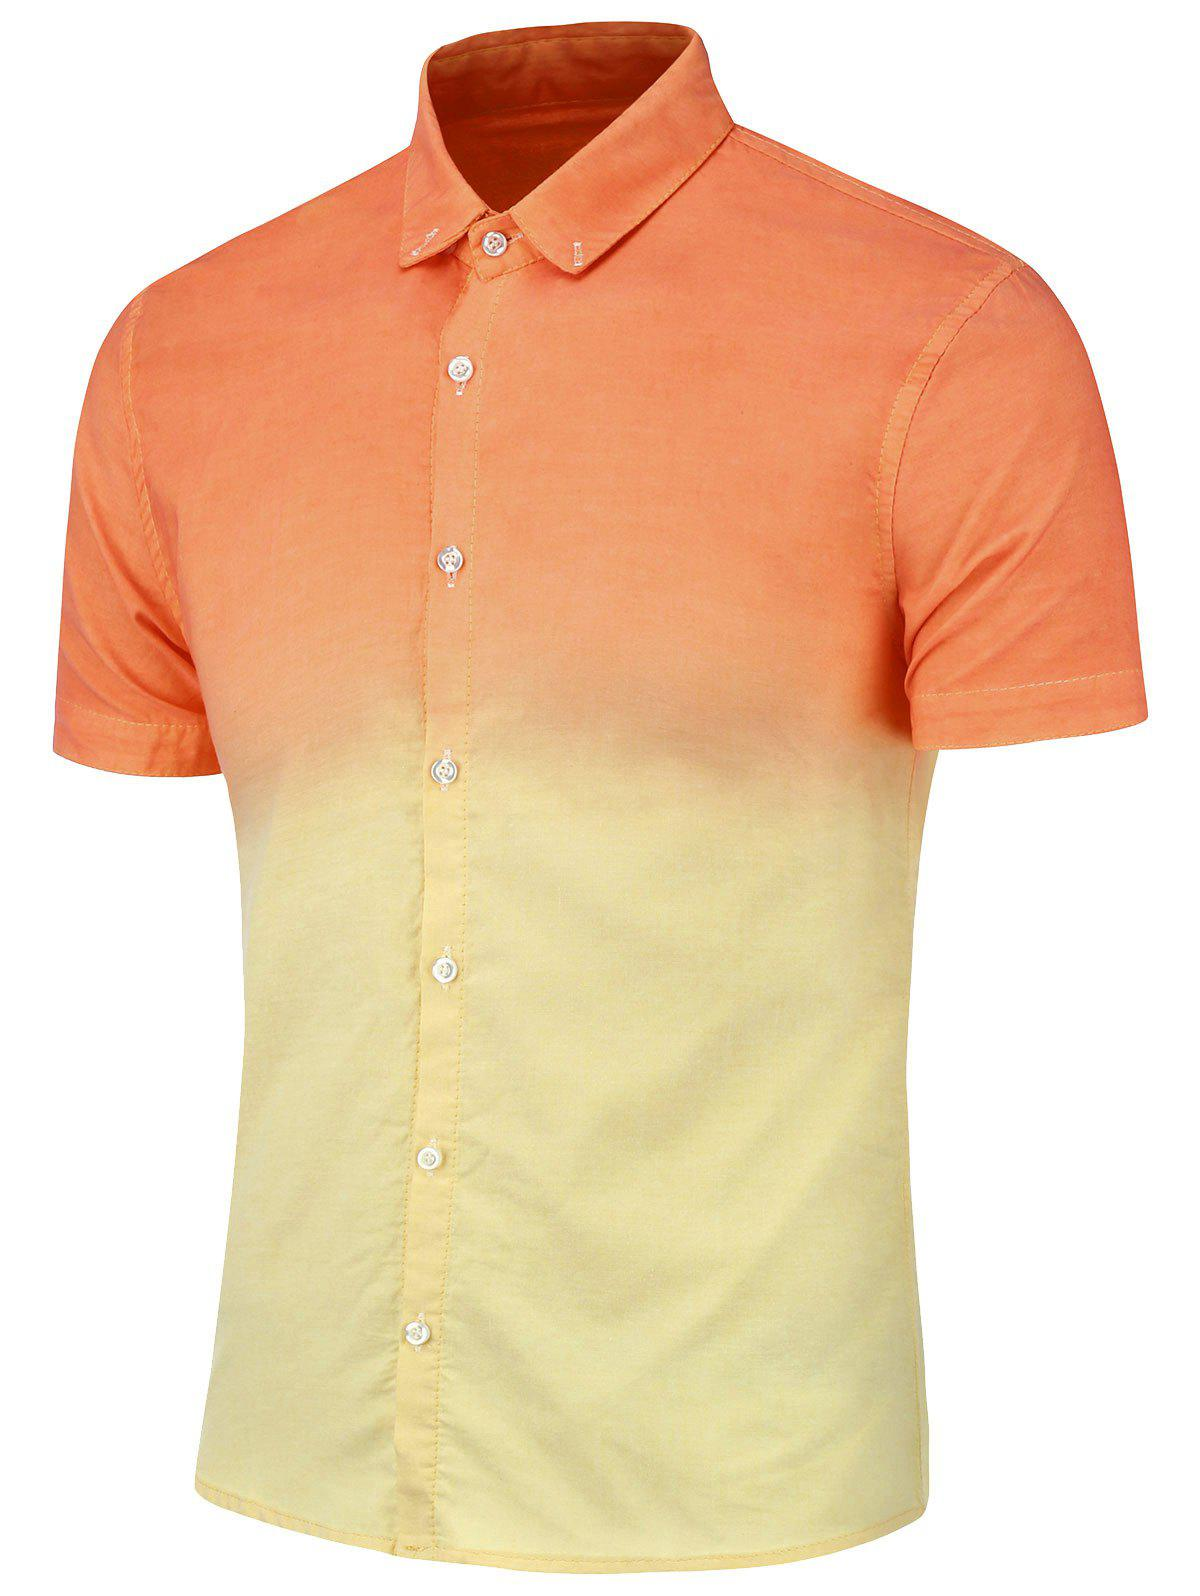 Dip Dye Button Down Short Sleeve Shirt - ORANGE YELLOW 4XL